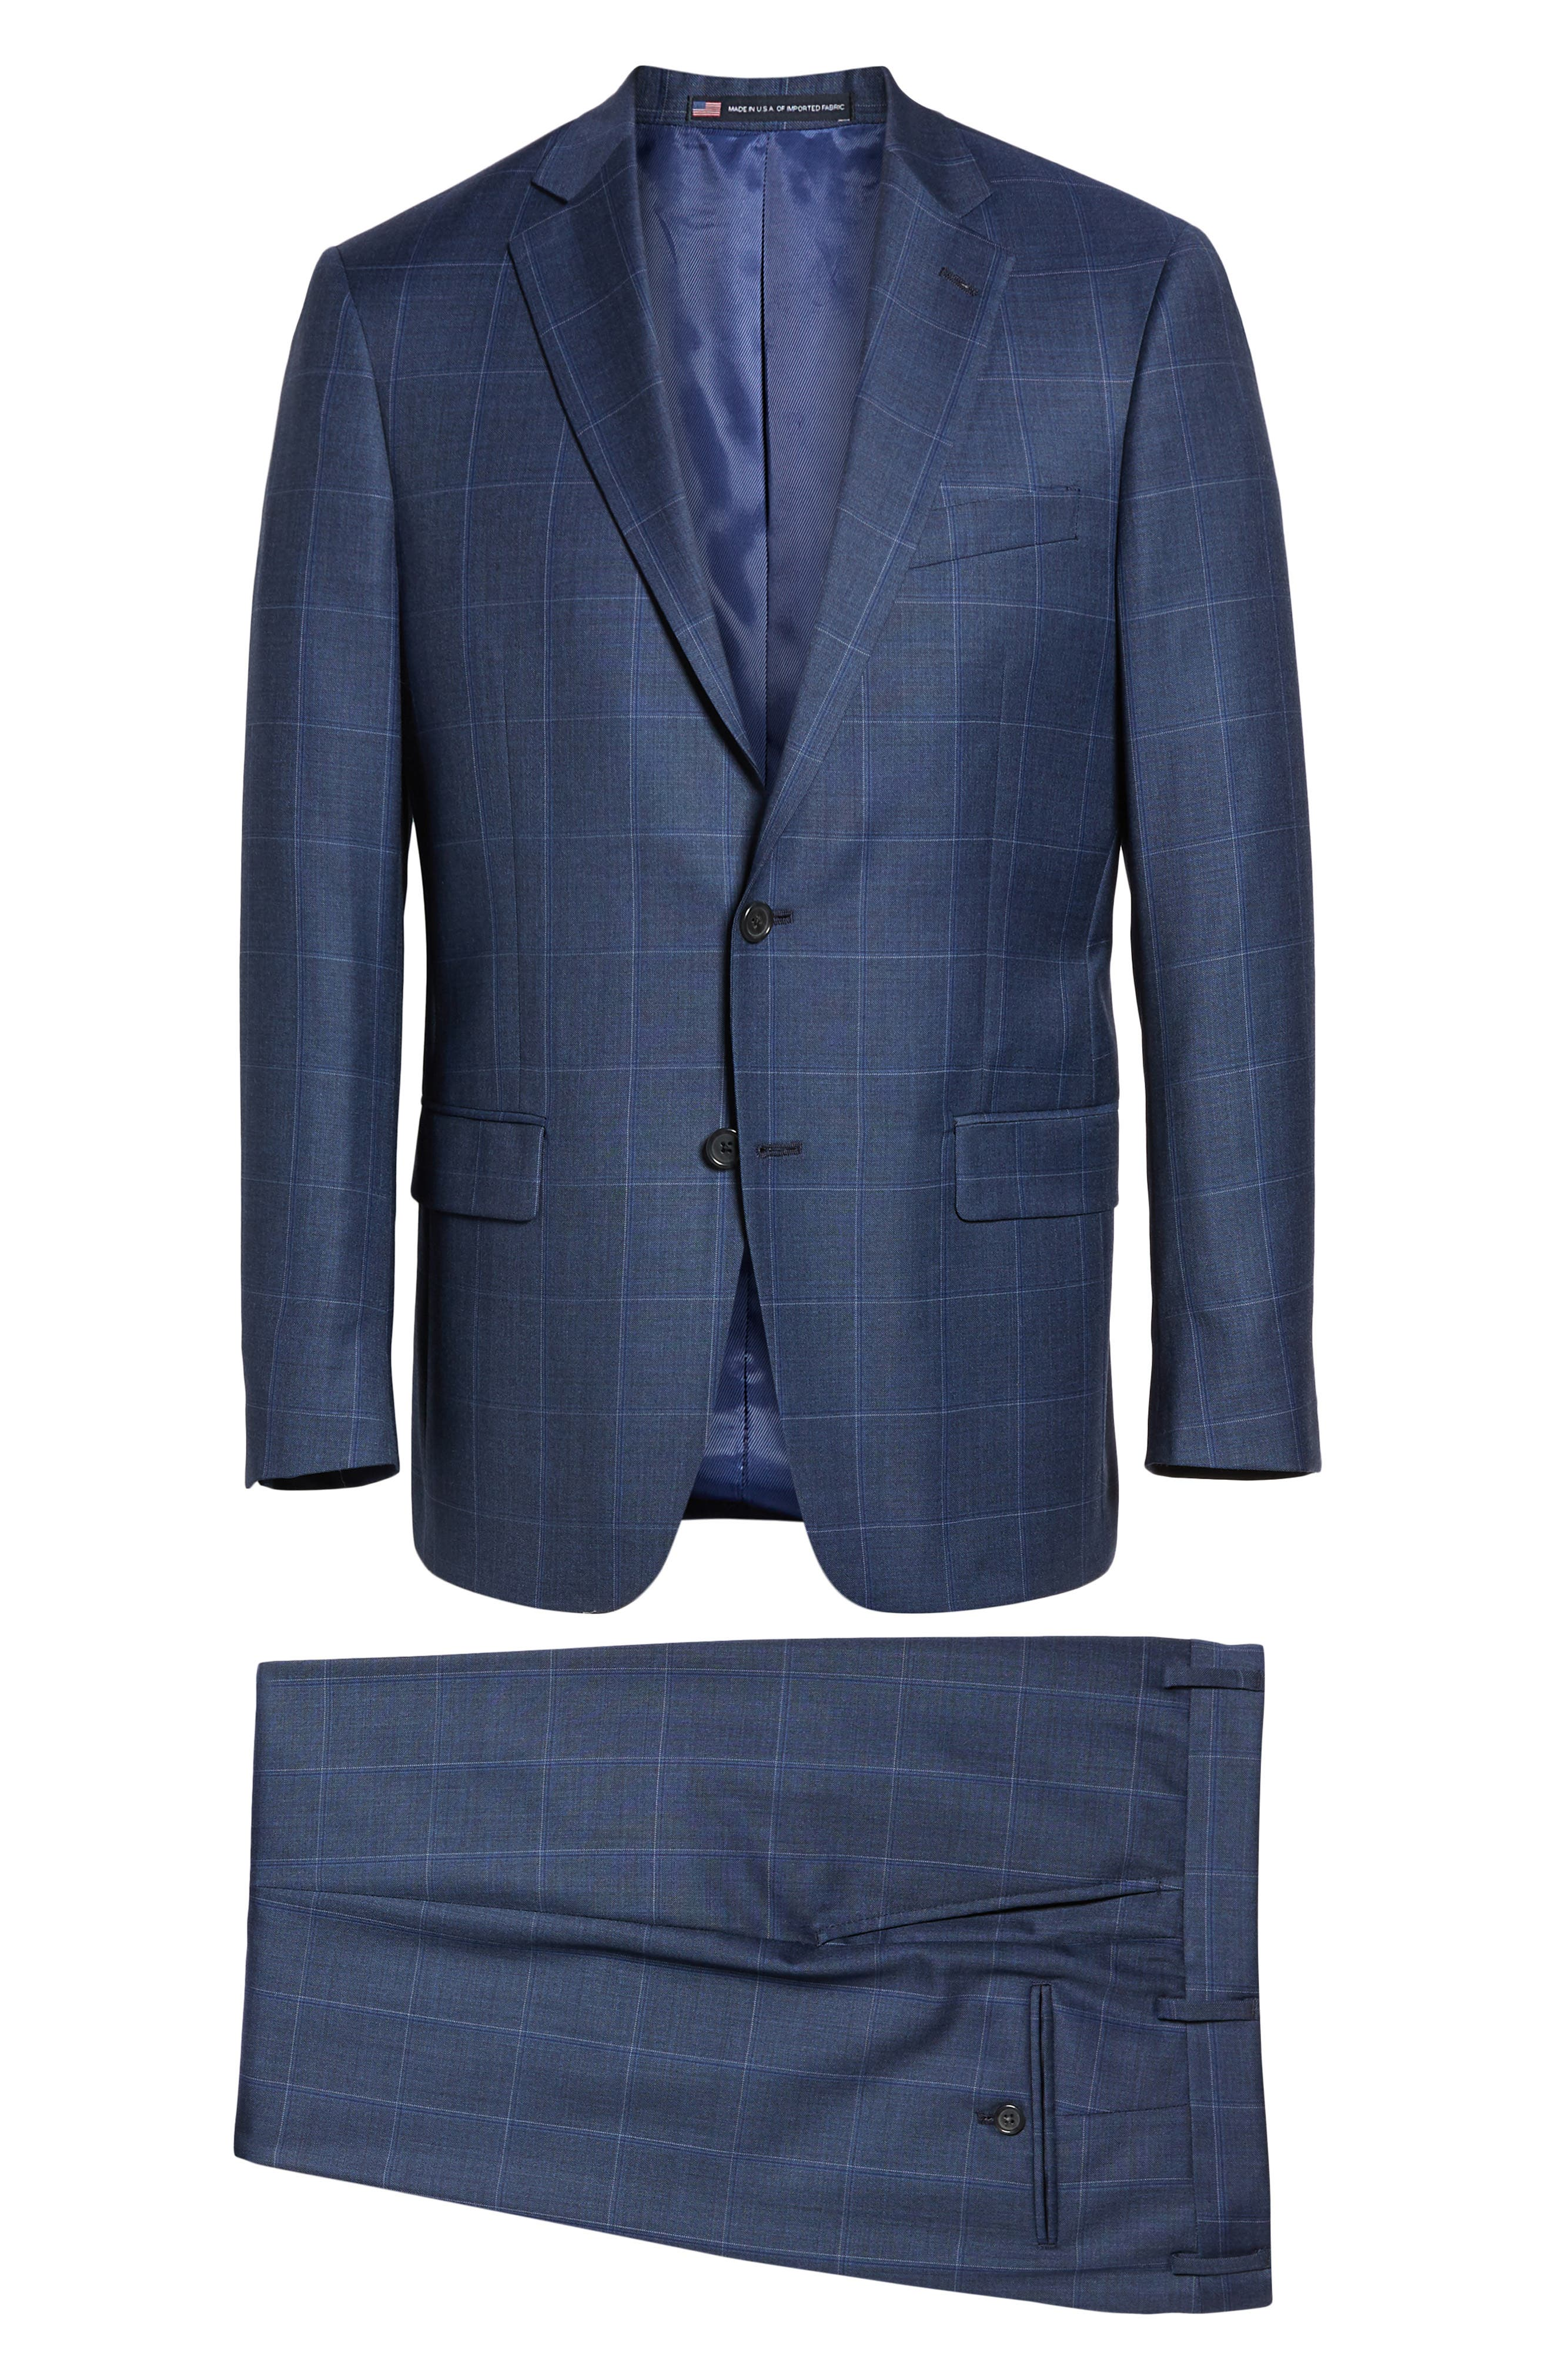 New York Classic Fit Windowpane Wool Suit,                             Alternate thumbnail 8, color,                             420